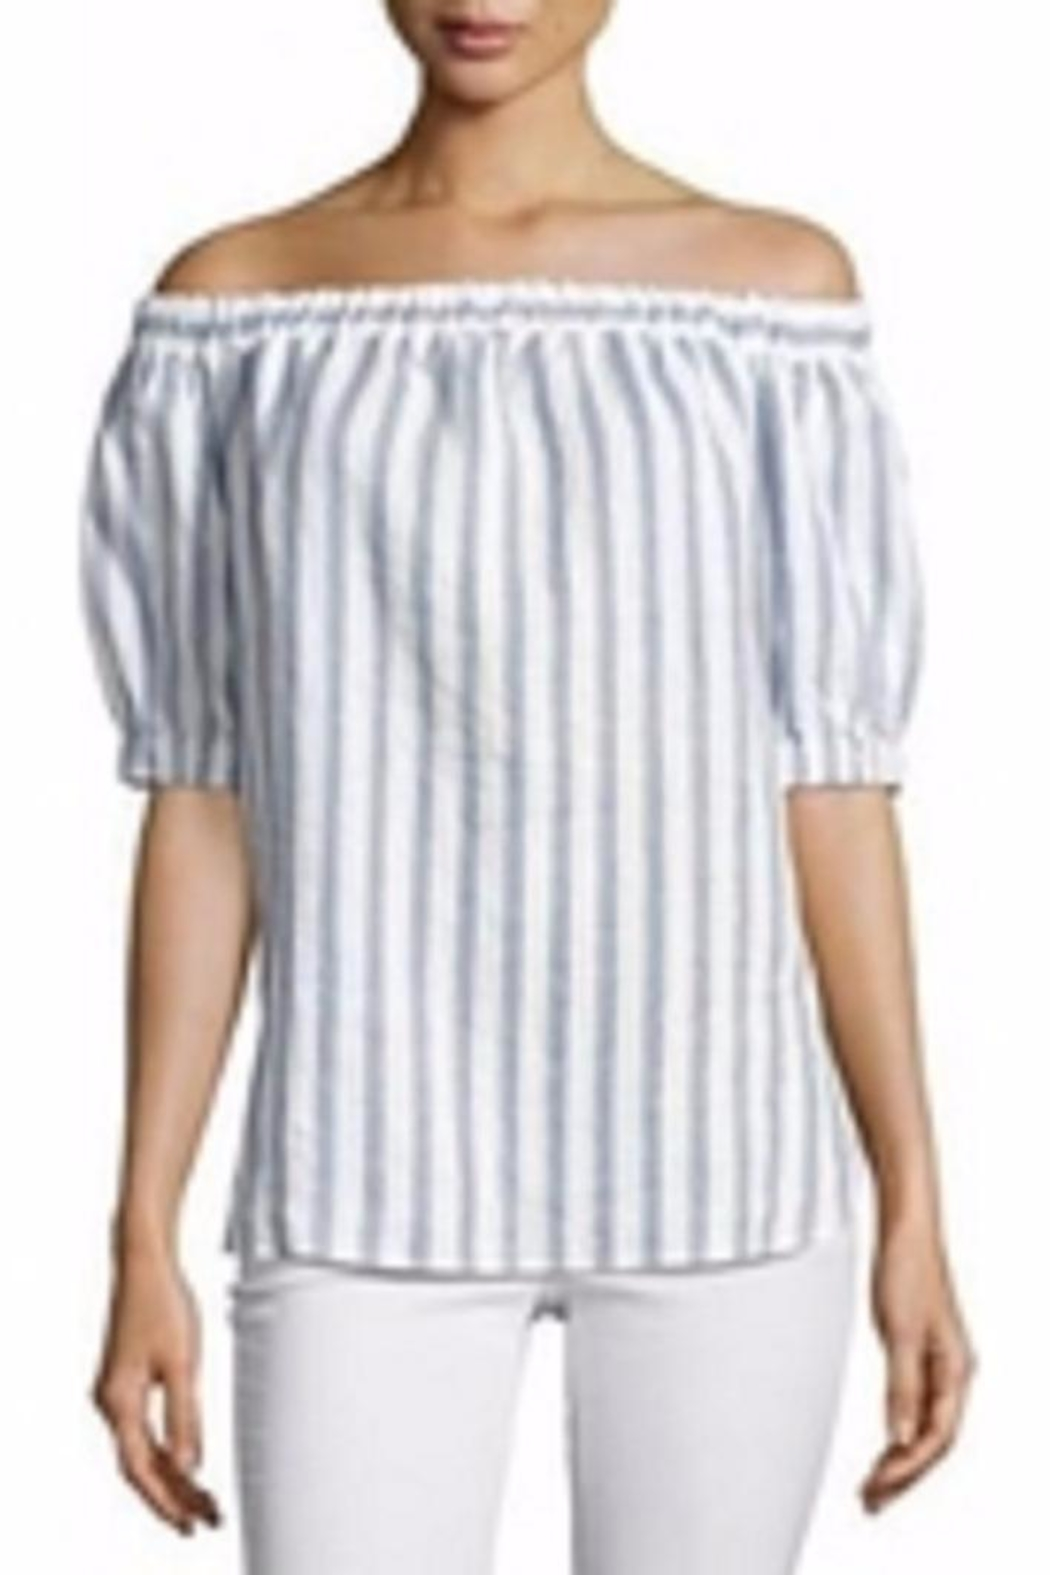 cc53b8fedeb7d Michael Kors Striped Off-The-Shoulder Top from Toronto by The ...